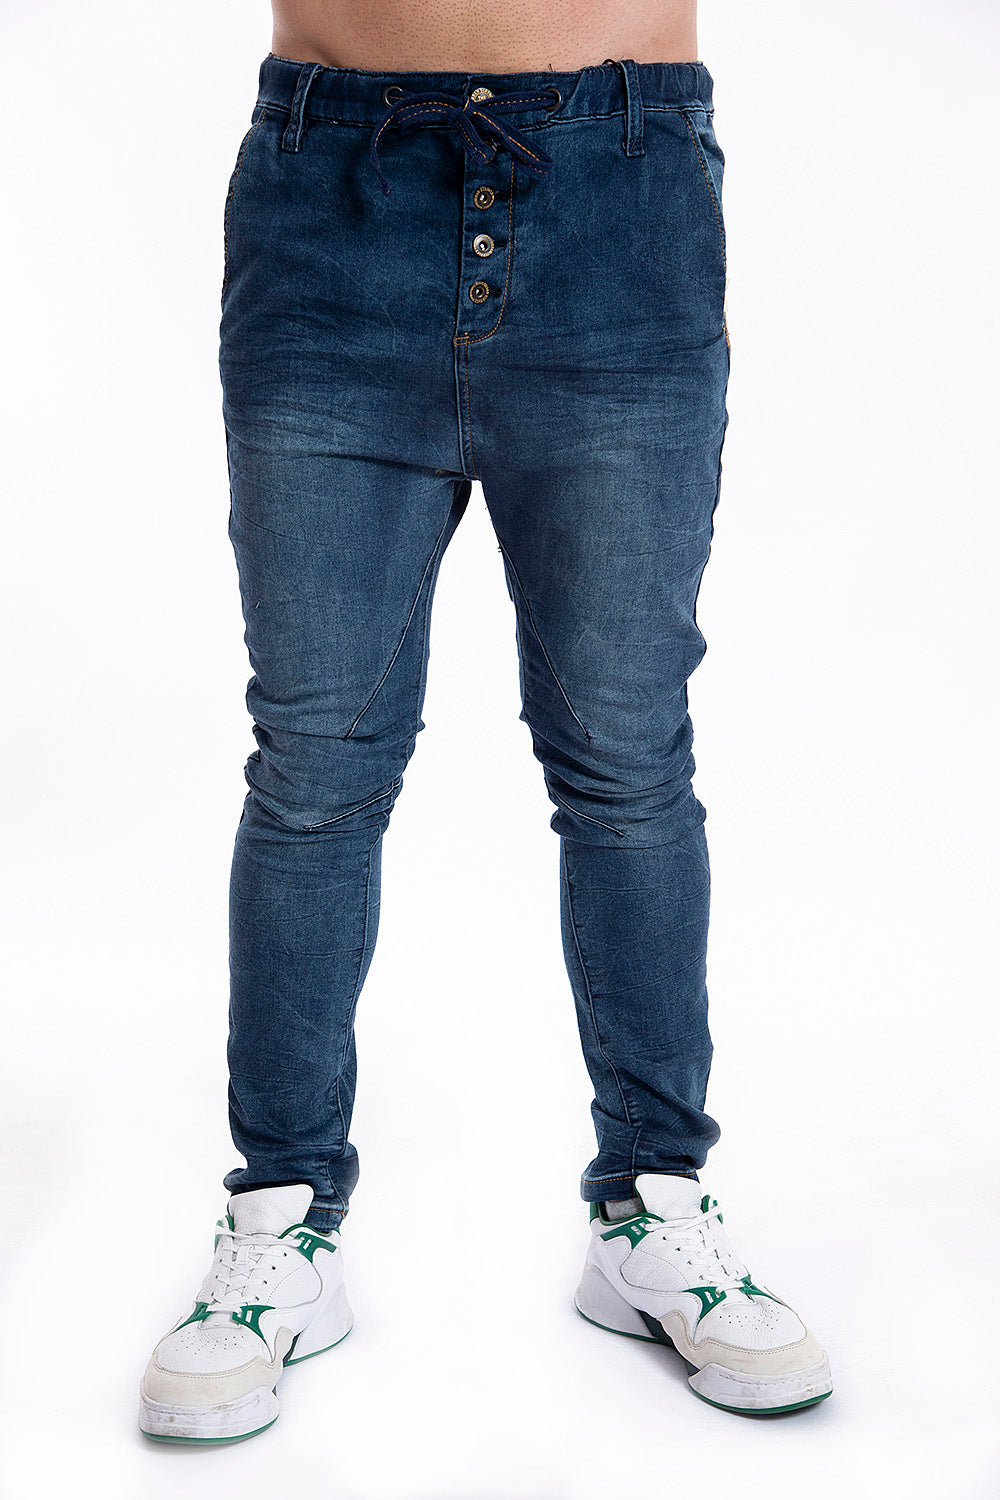 Urban Surface jeans with drawstring